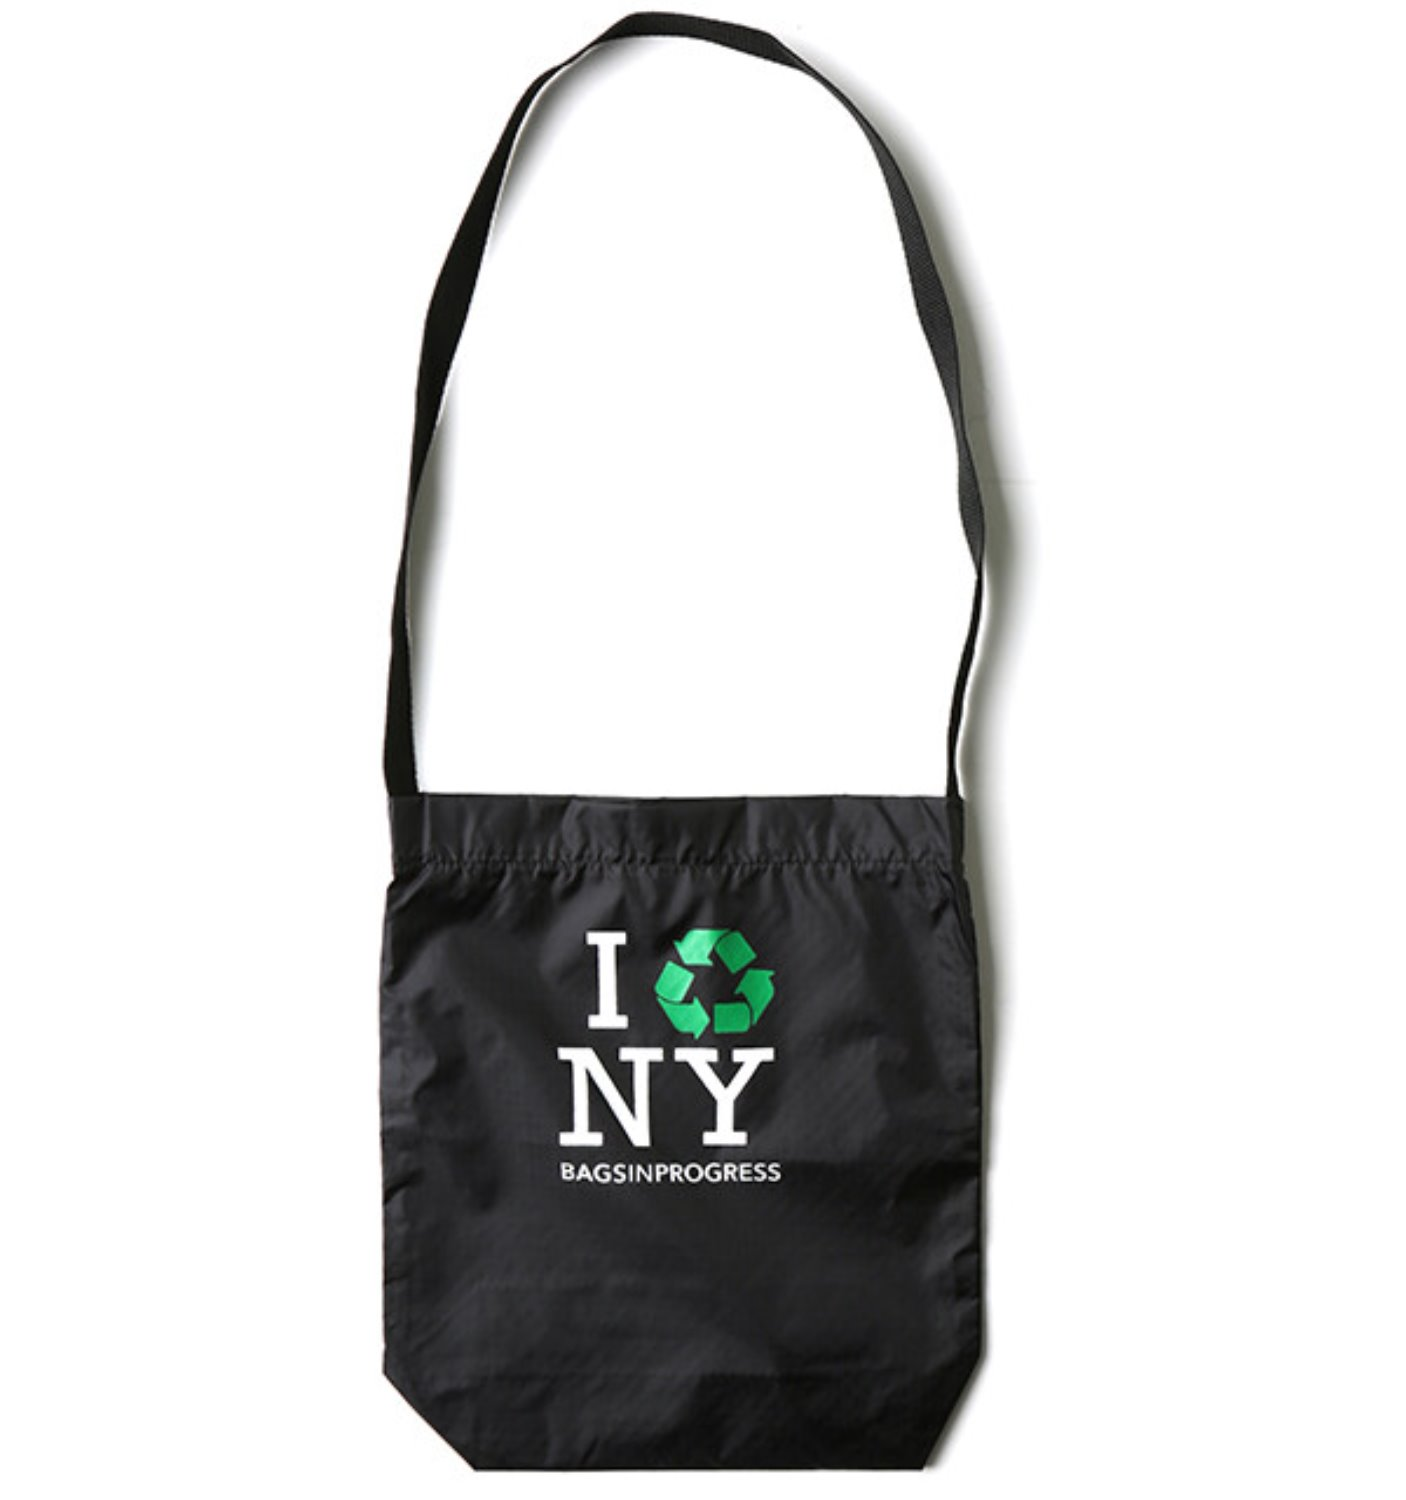 RIPSTOP NYLON SHOULDER SLING-I RECYCLE NY BLACK(17105RNNY)